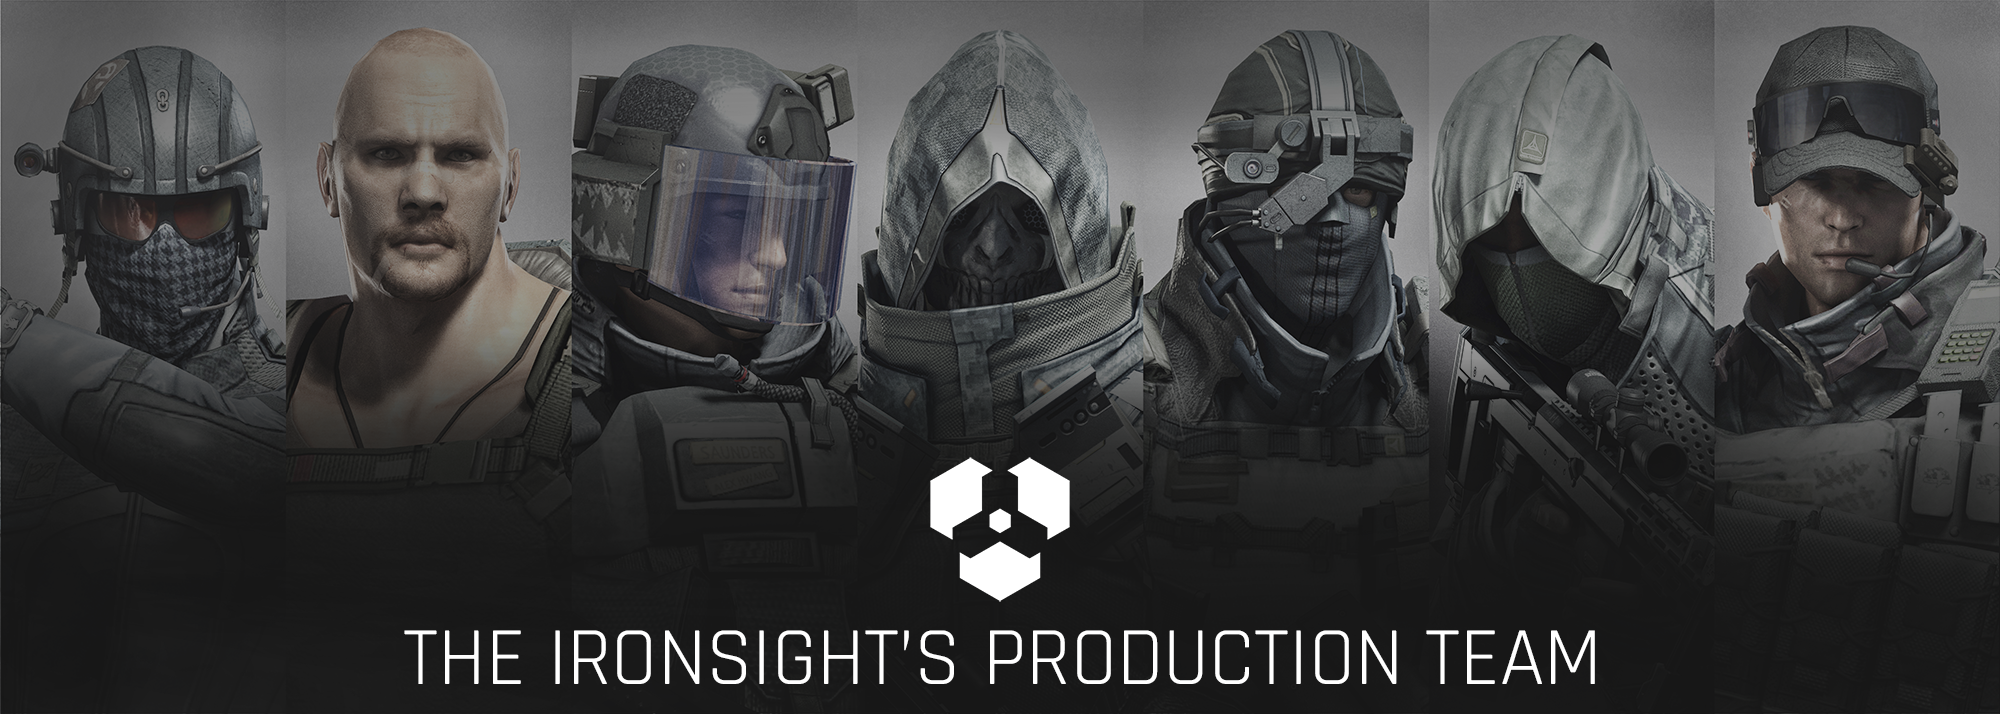 Production_team_banner_BIG.png